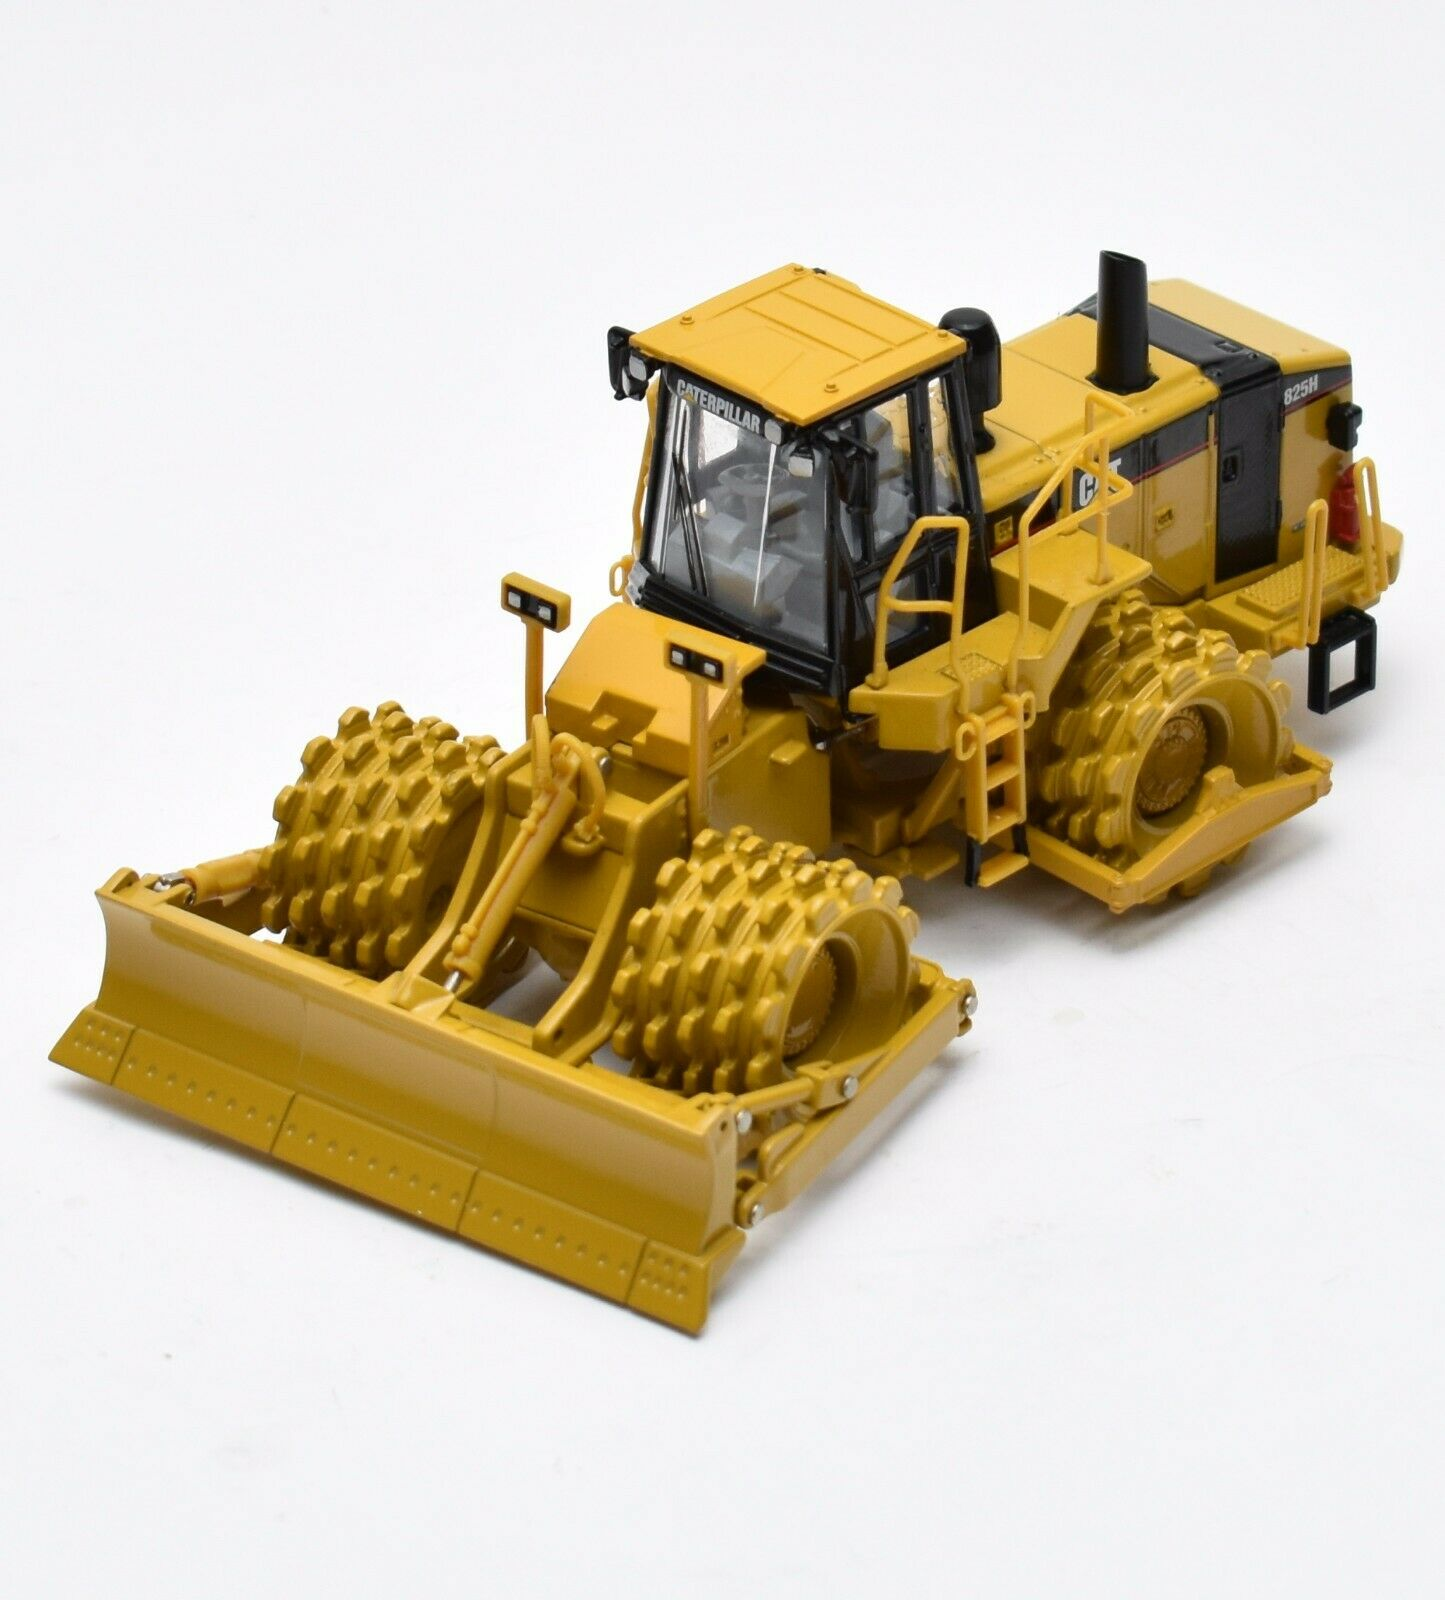 Norscot 55165 Cat 825h soil compactor caterpillar, OVP, 1 50, s010